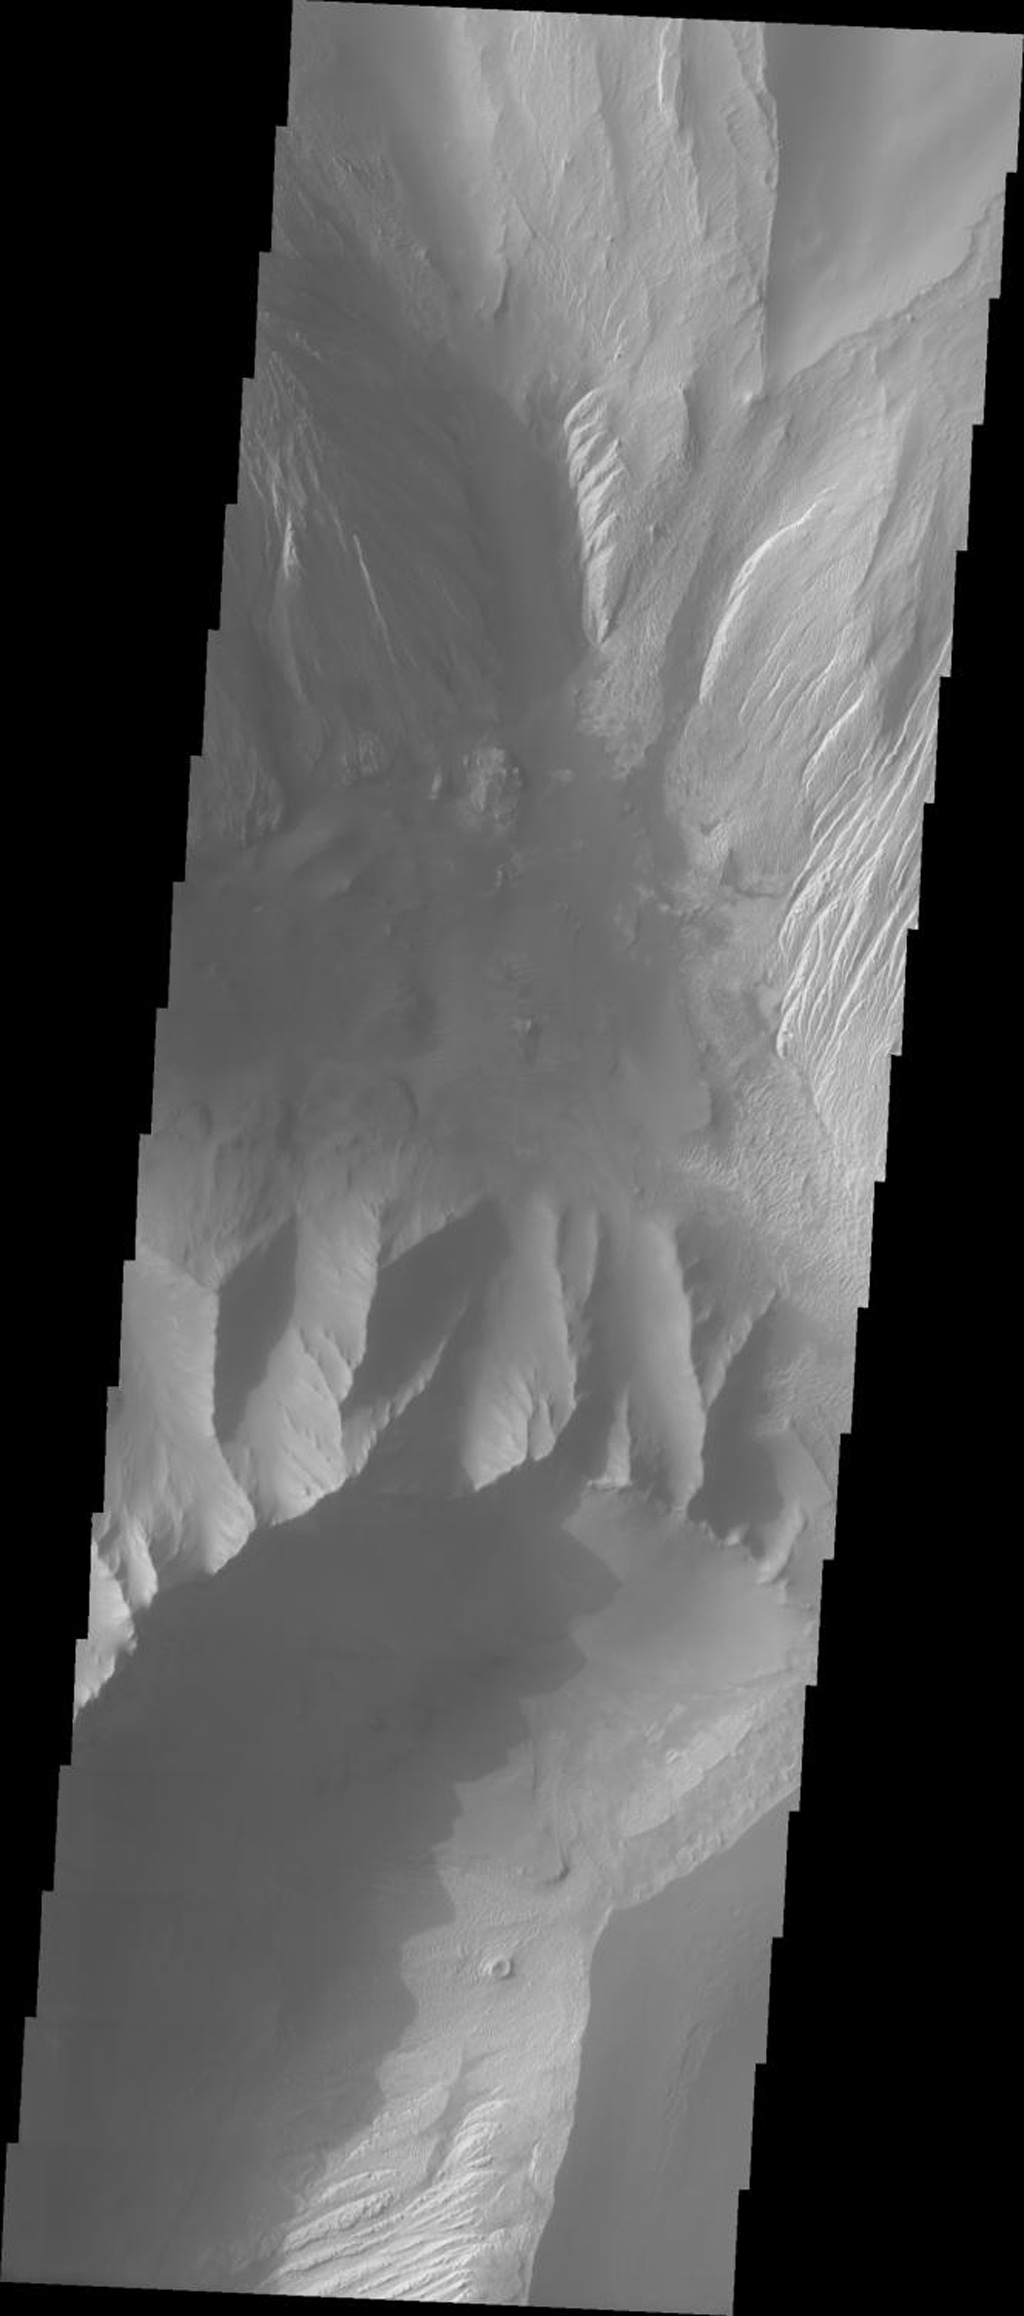 This image from NASA's 2001 Mars Odyssey released on Sept 20, 2004 shows the hills on Mars found between Ophir Chasma (northern part) and Candor Chasma. Multiple slides, dunes, and wind-eroded surfaces are present in this area.